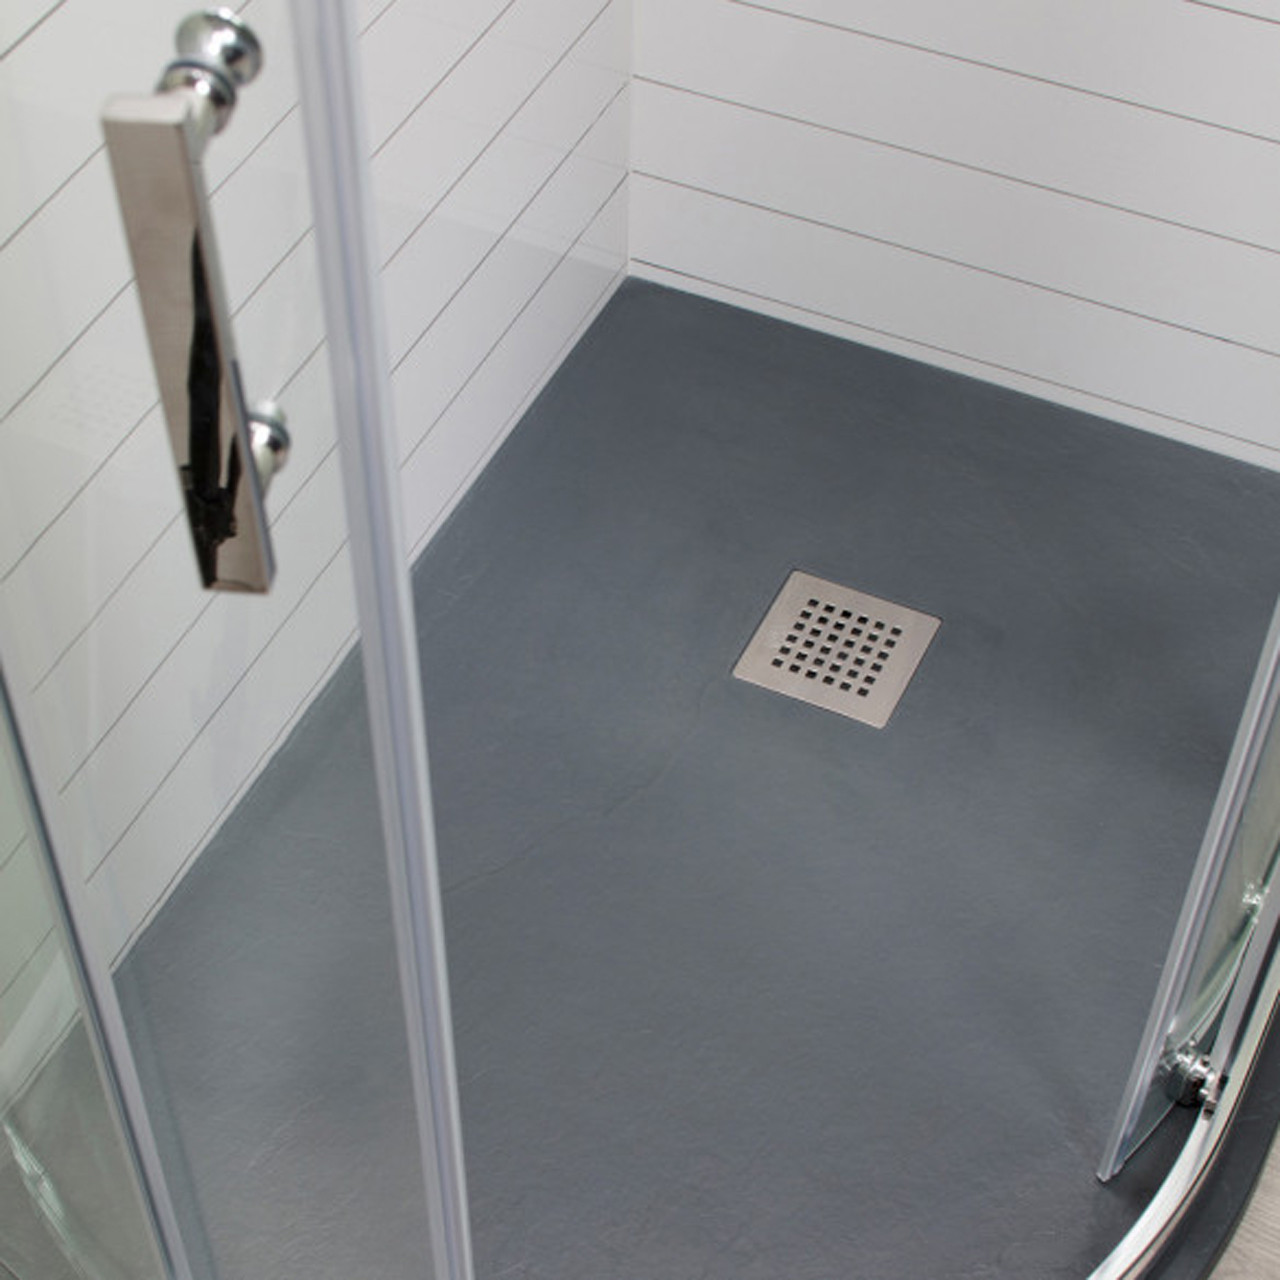 Wholestone Slate Left Hand 1200mm x 900mm Anthracite Offset Quadrant Shower Tray